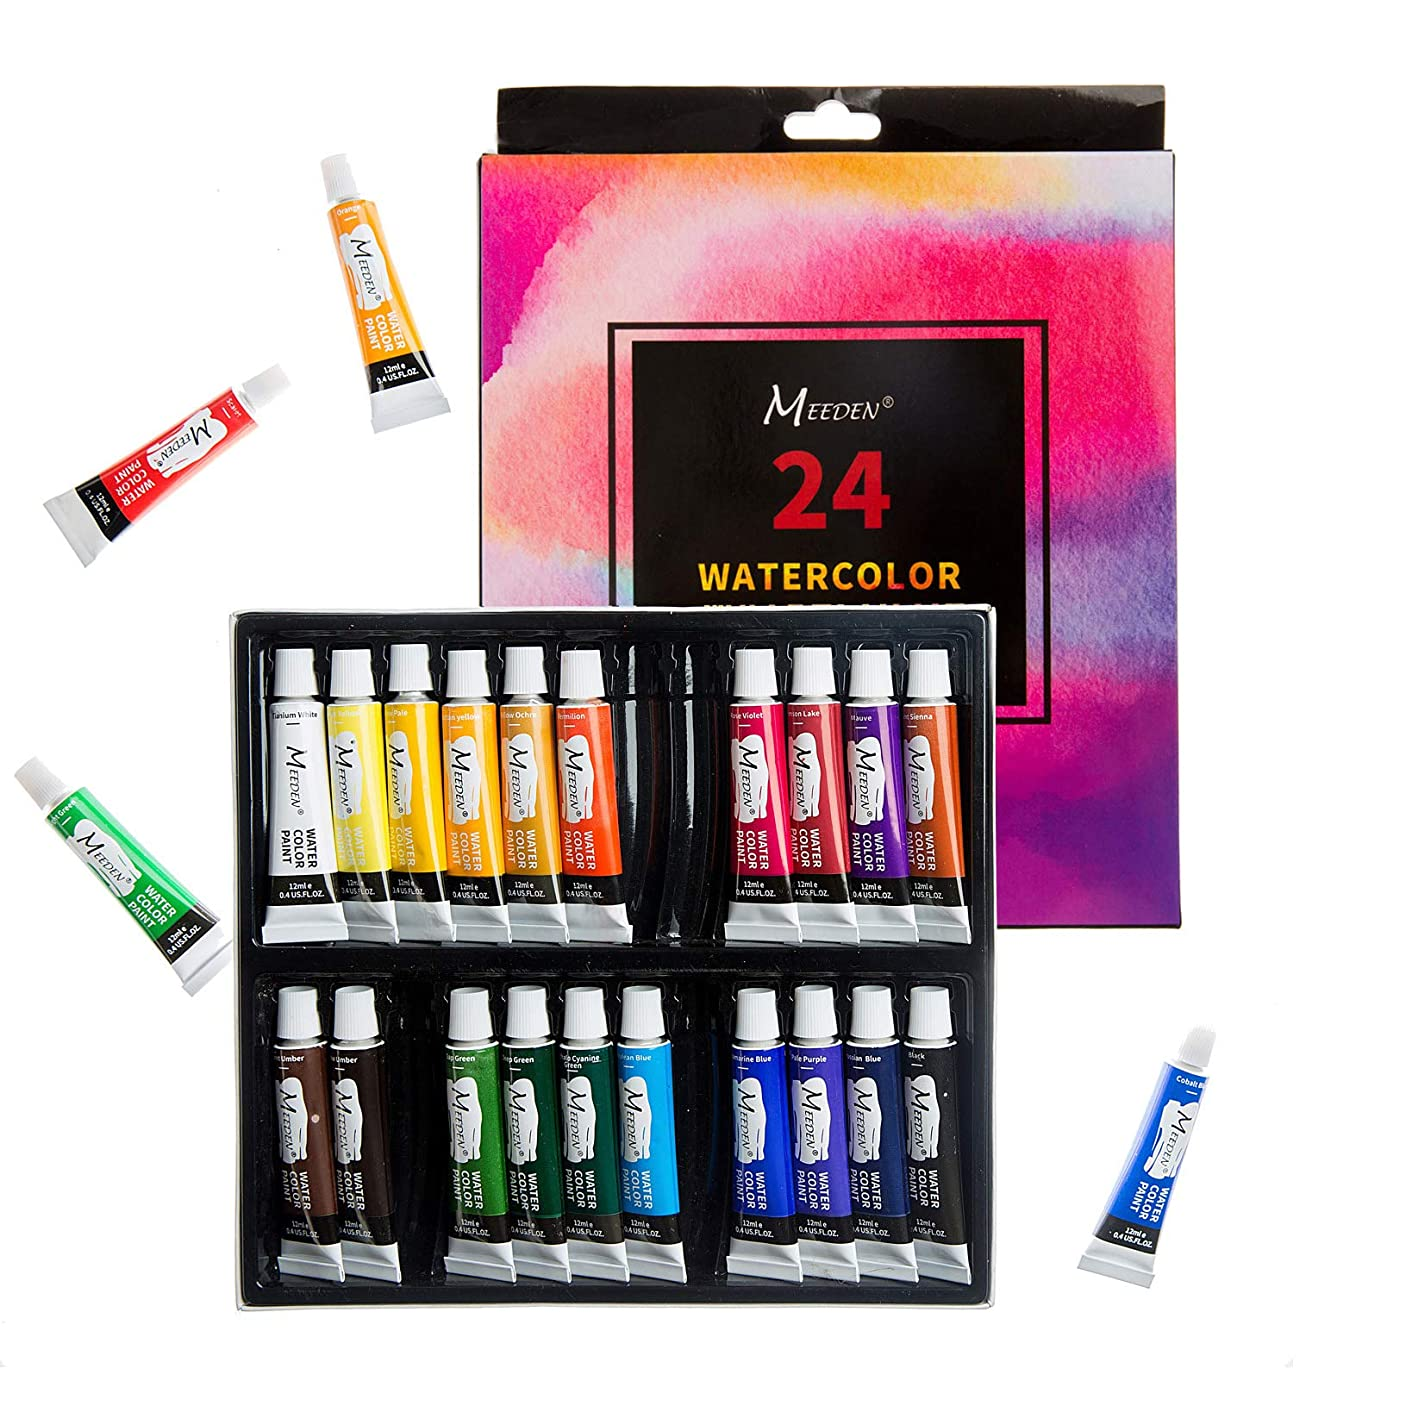 MEEDEN Watercolor Paint, Set of 24 Vibrant Colors in Tubes(24 x 12ml), Premium Painting Kit for Artists/Students/Beginners, Rich Pigments/Vibrant/Non Toxic for Landscape Portrait Paintings